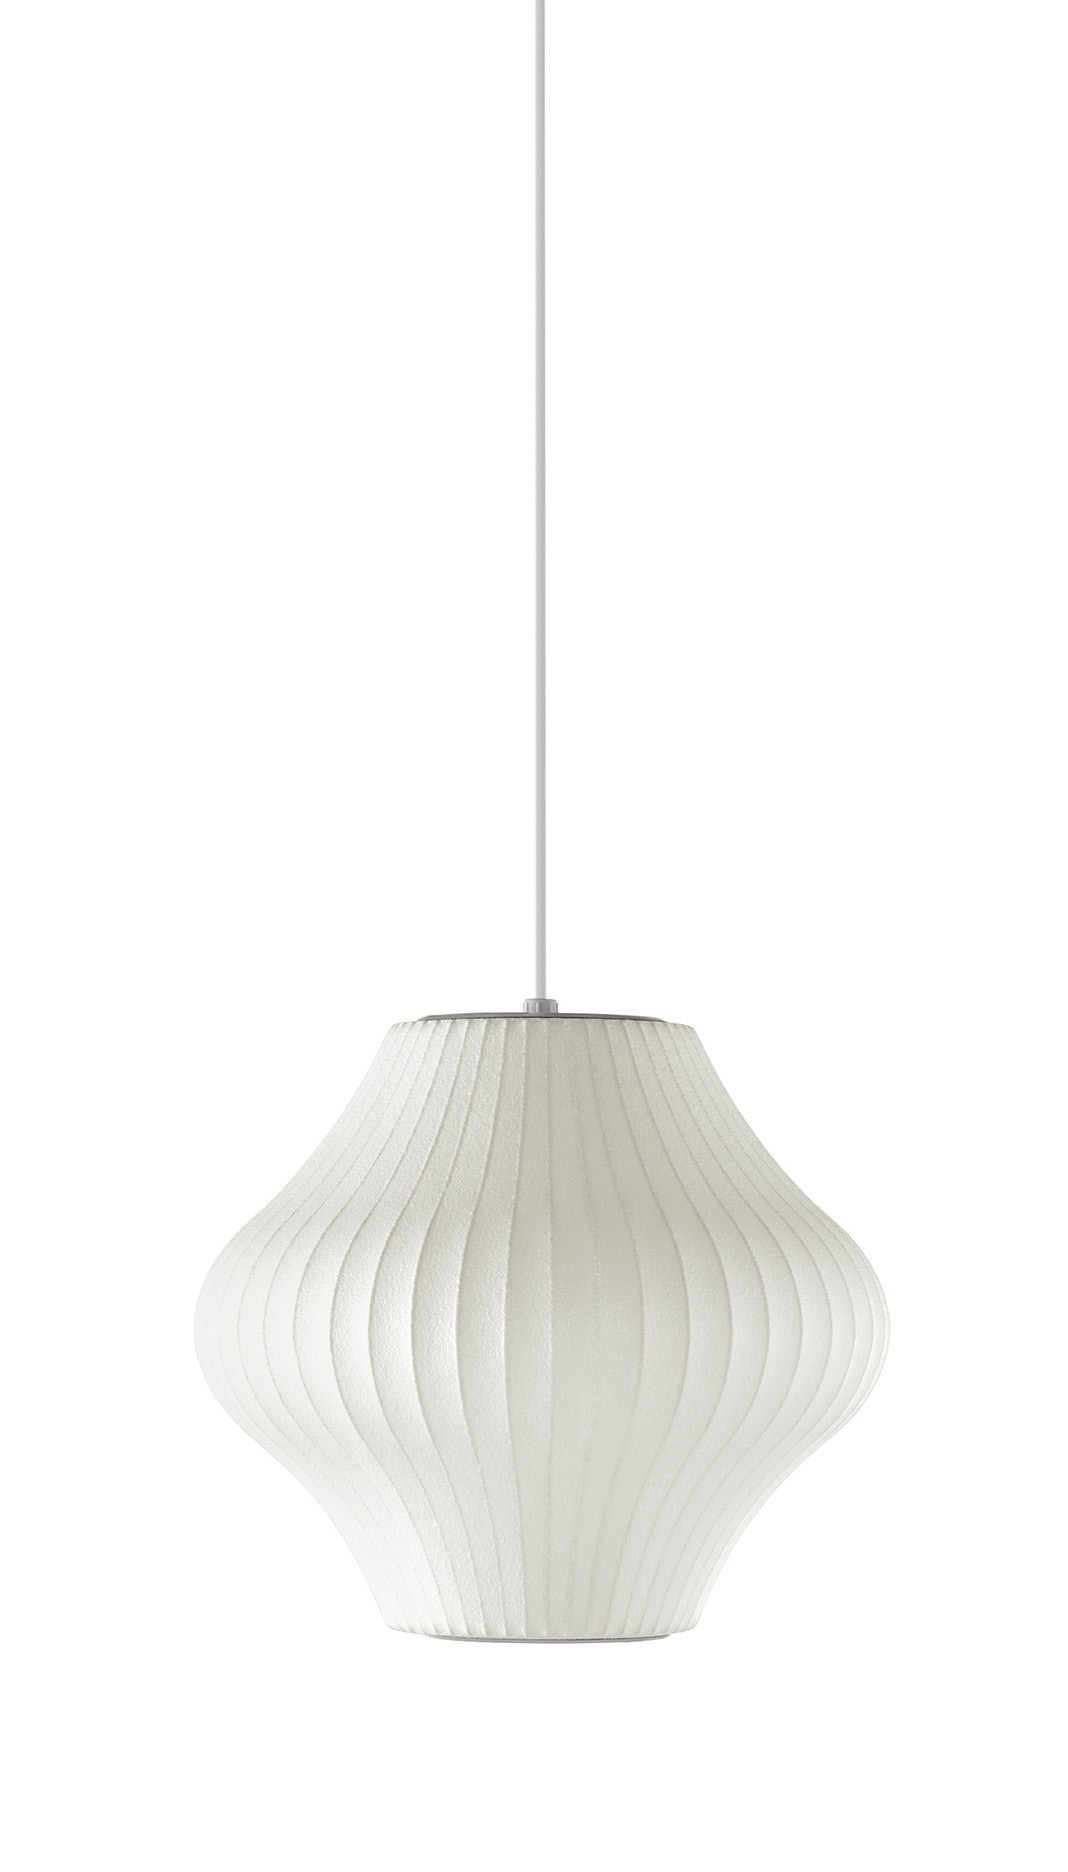 Herman Miller Nelson™ Pear Bubble Lamp Pendant